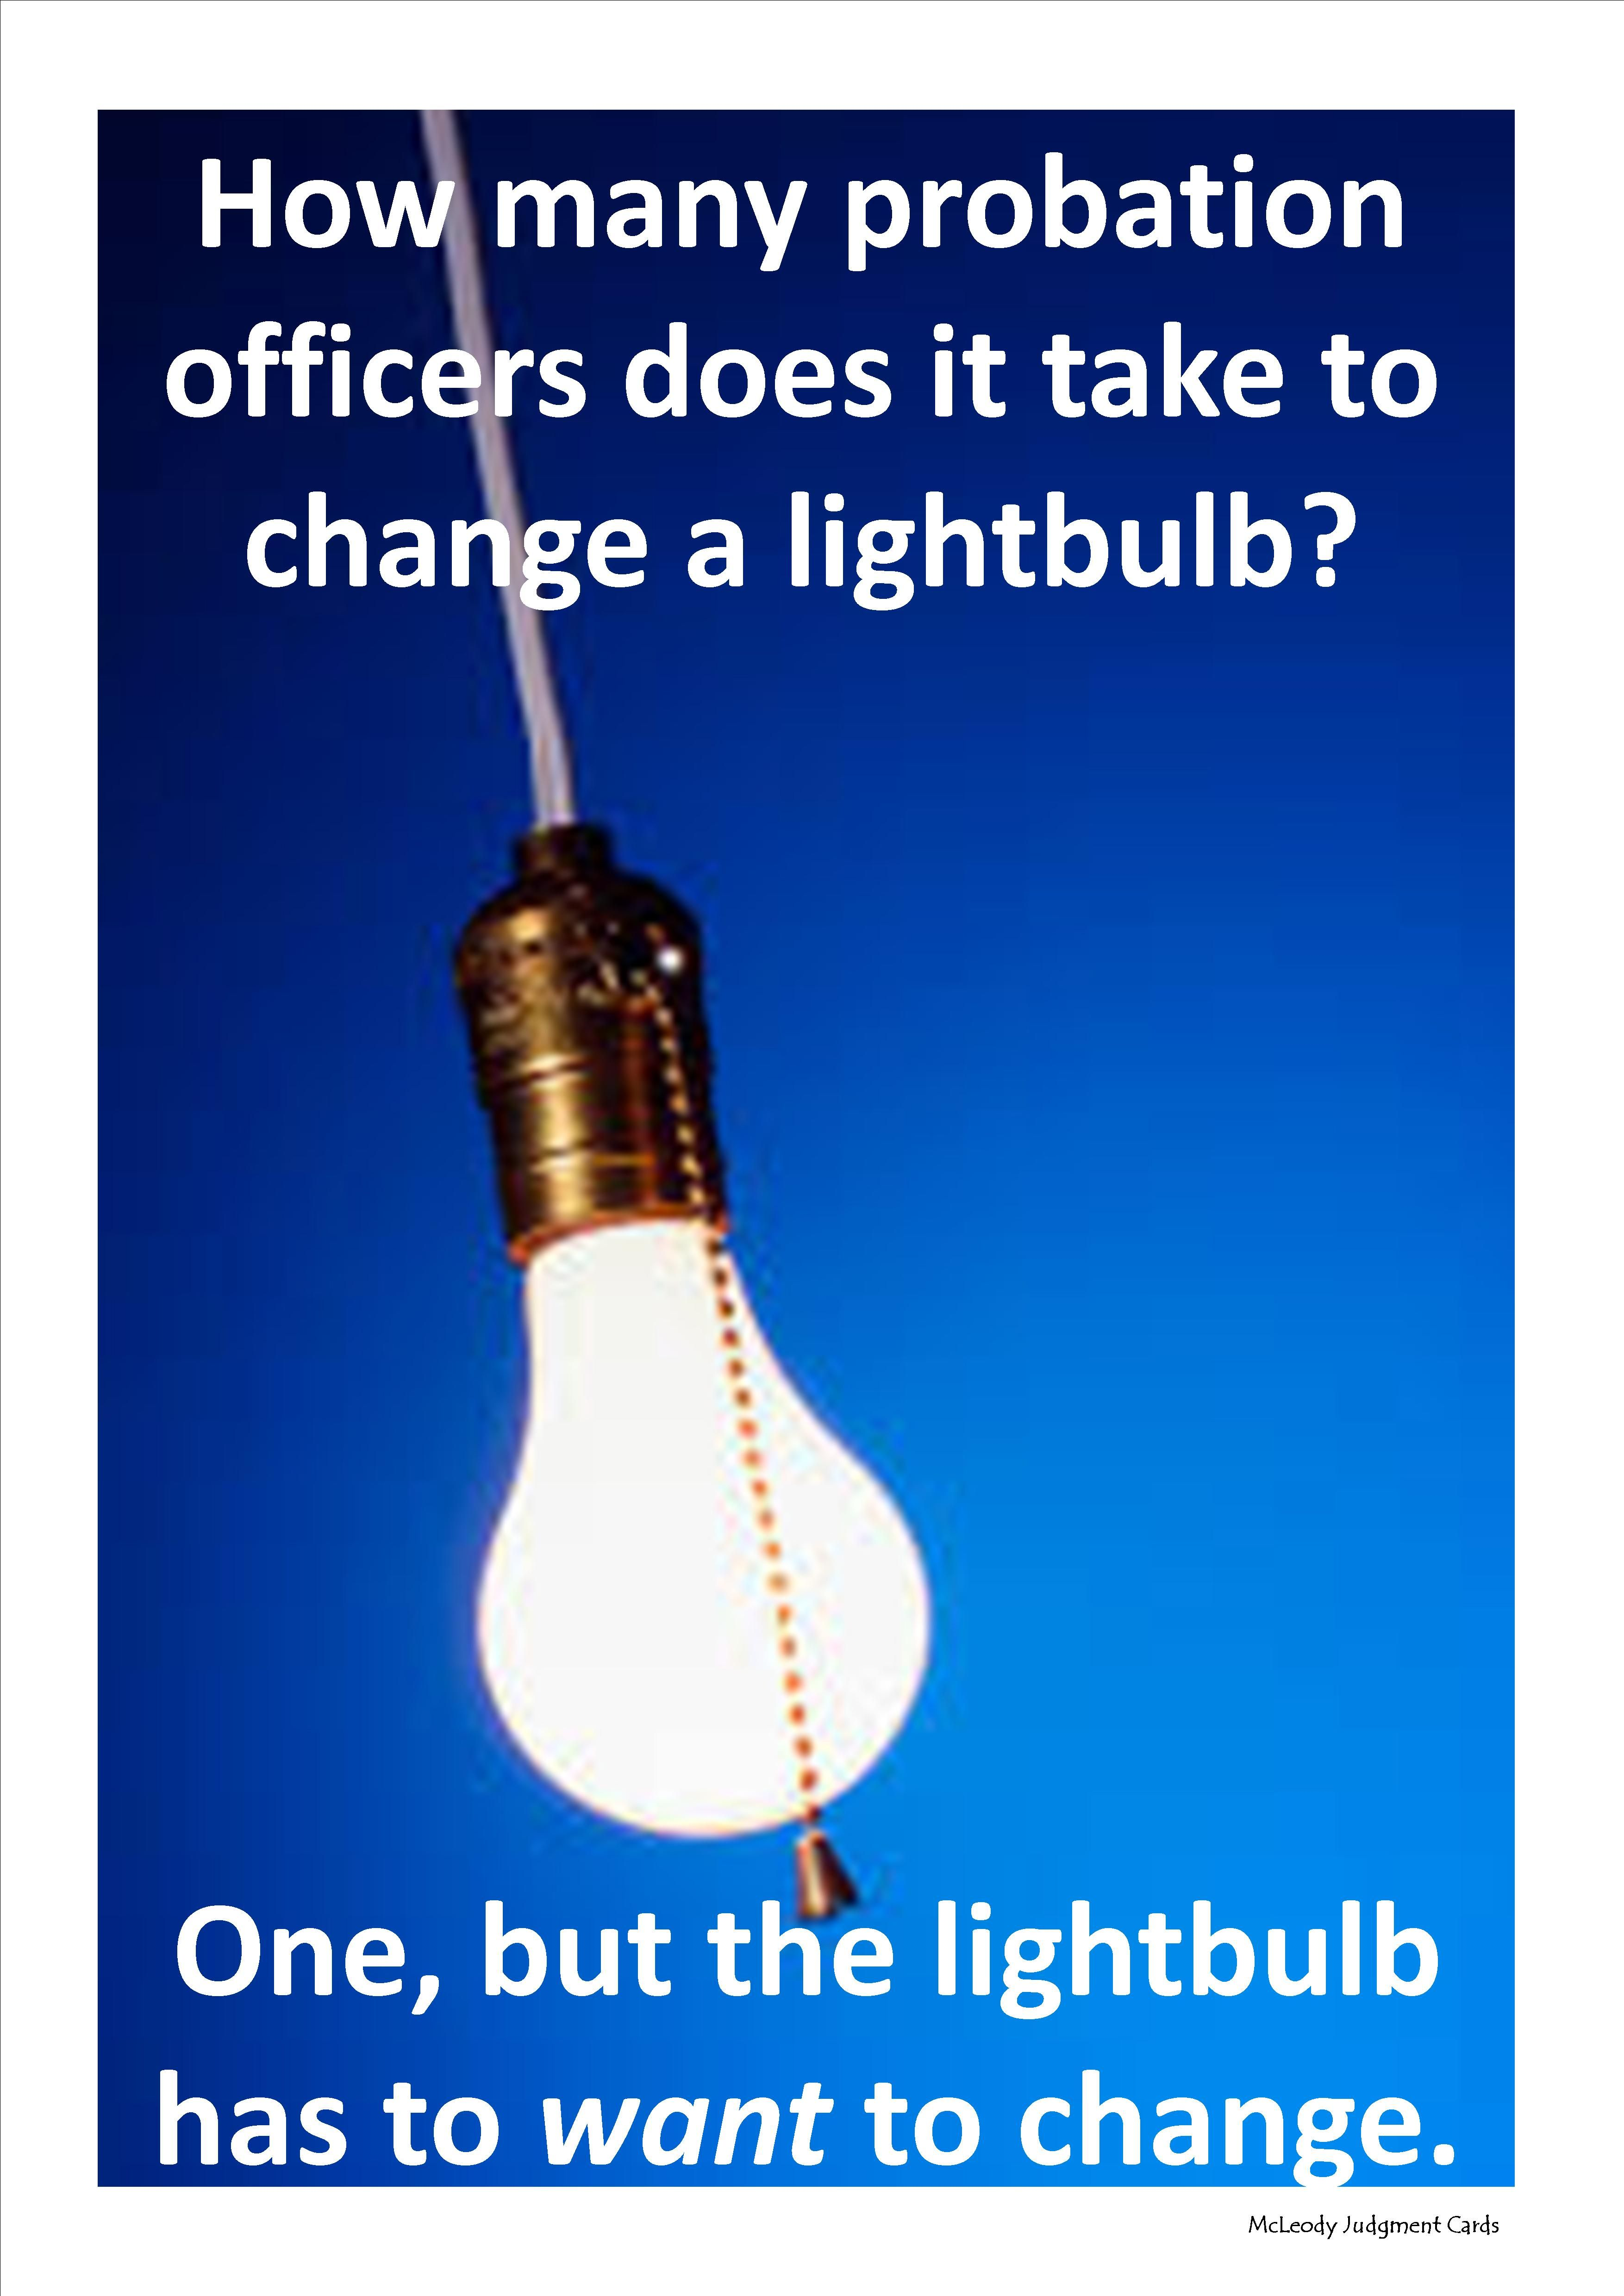 Probation Officers Do It Under Special Conditions.